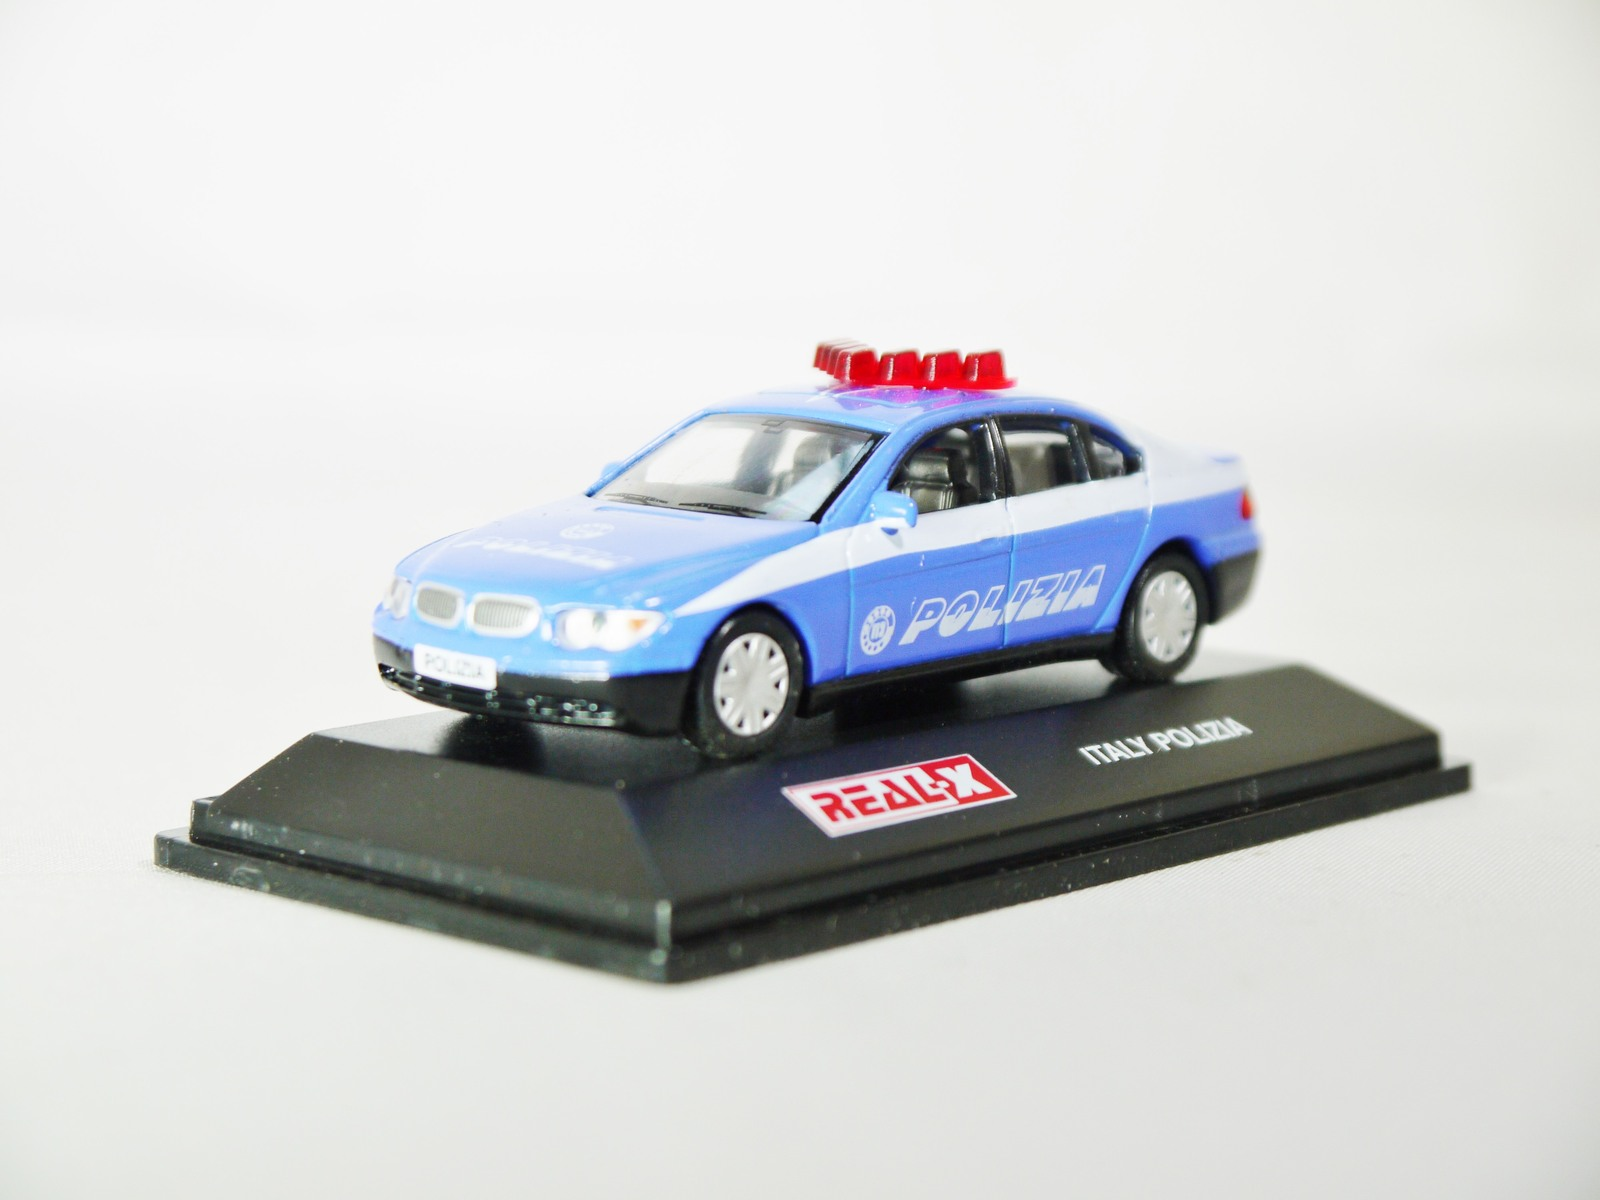 Real x collection 1 72 italy polizia car 519   bmw 7 series patrol car   02